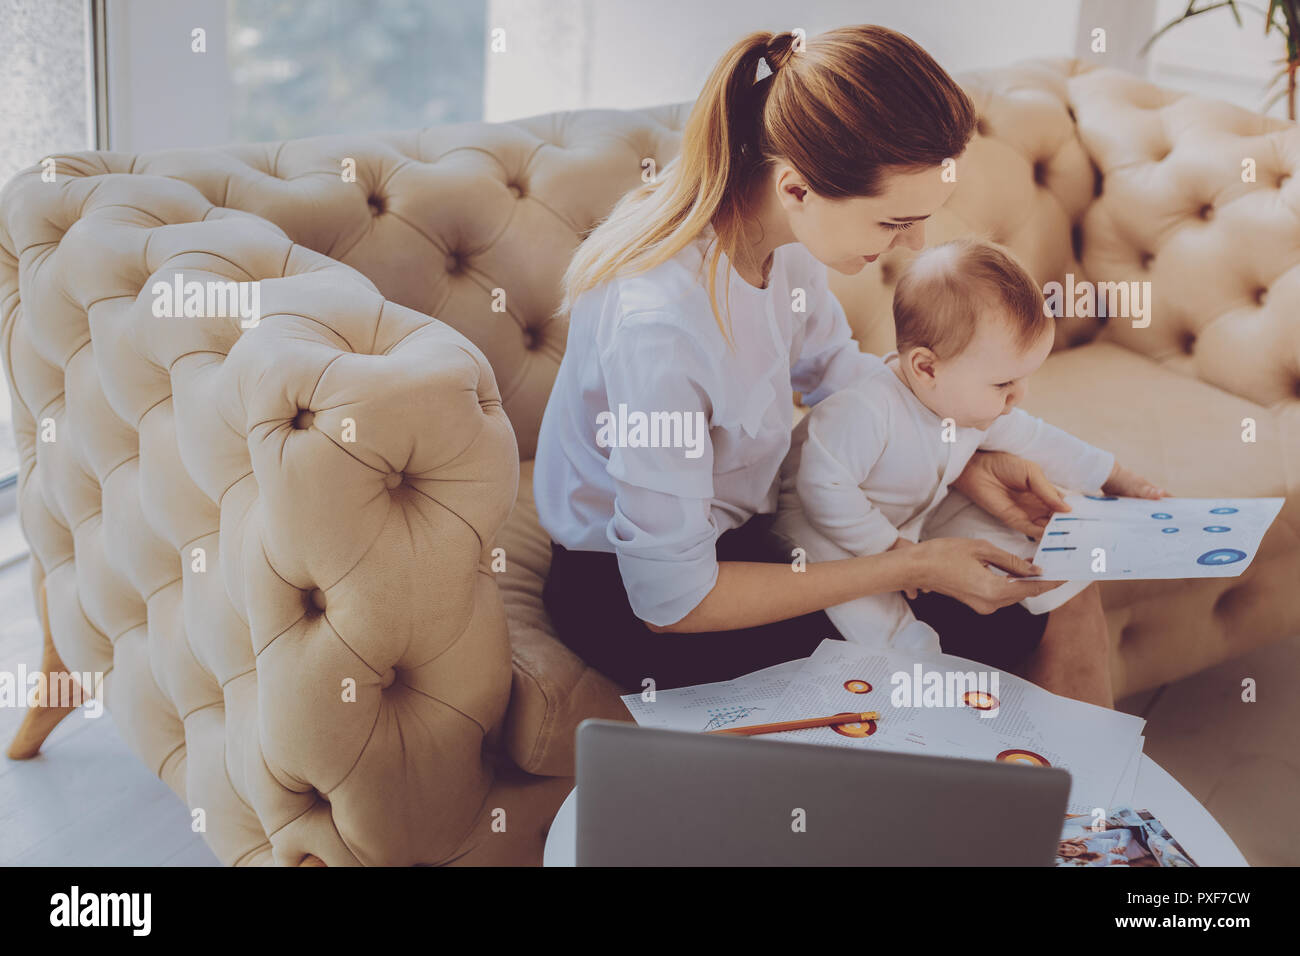 Corporate remote worker feeling engaged in new project while nursing her child - Stock Image